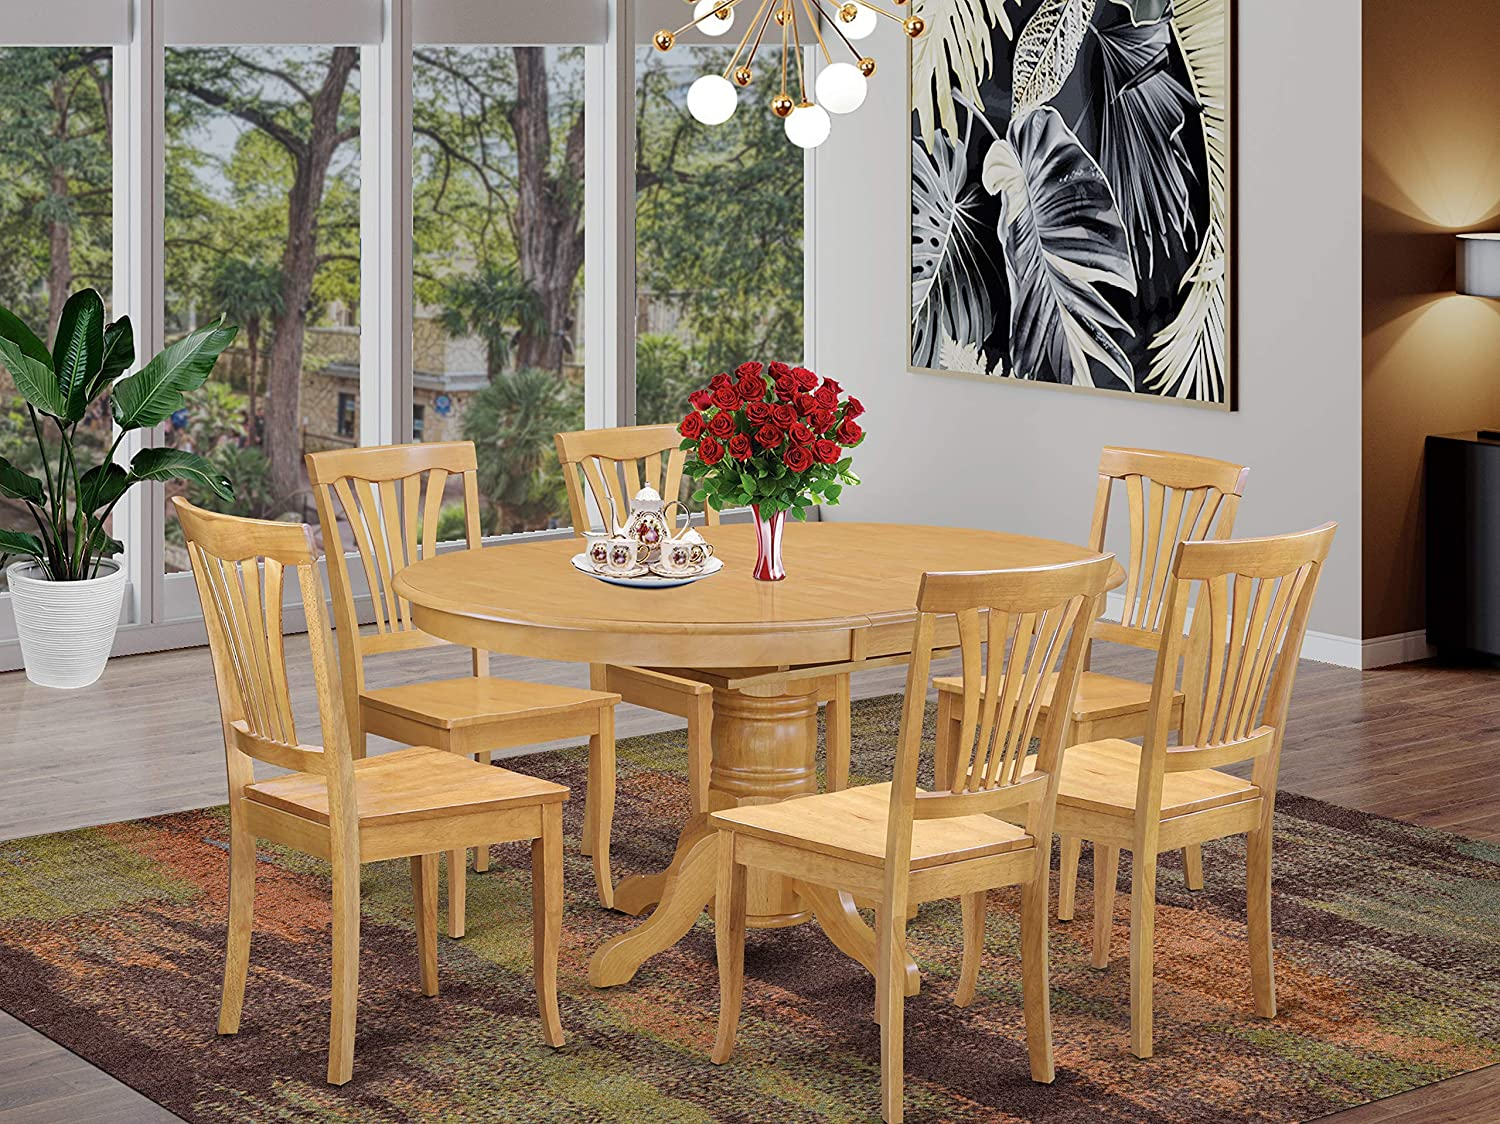 Amazon Com East West Furniture Kitchen Dining Table Set 6 Wonderful Wood Chairs A Lovely Round Dining Table Oak Color Wooden Seat Oak Butterfly Leaf Dining Room Table Furniture Decor